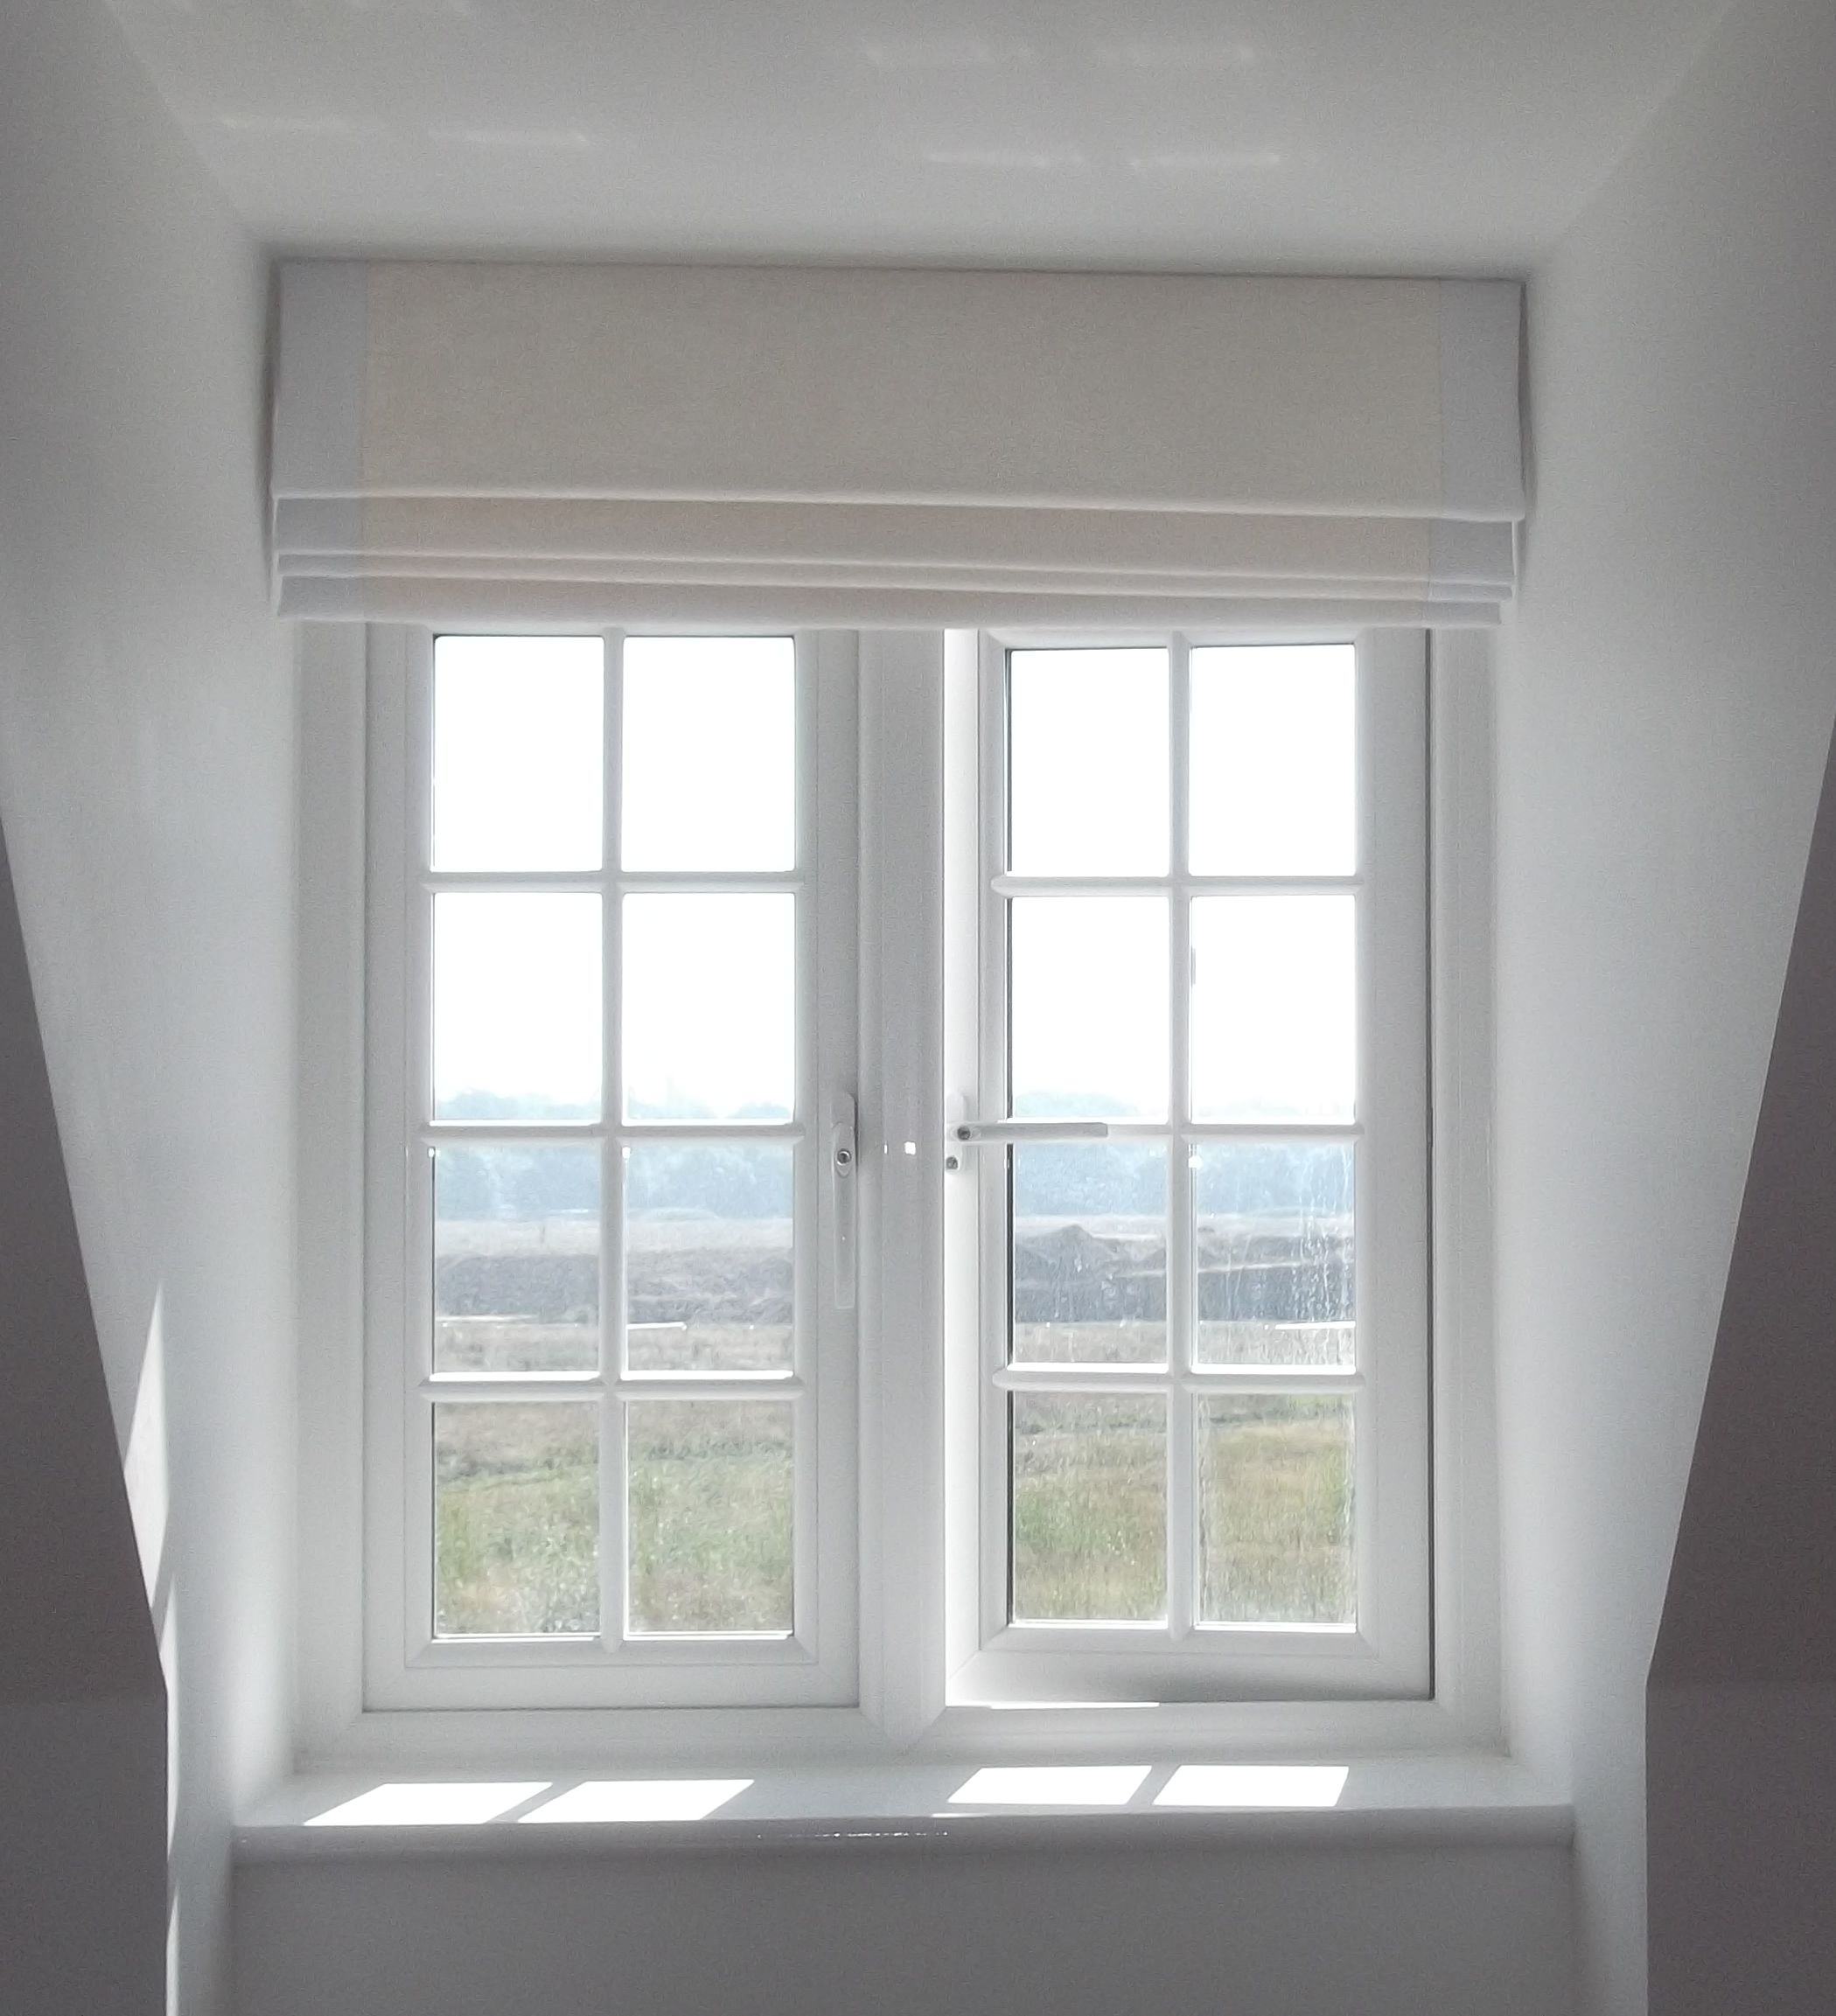 Bathroom window blinds - A Roman Blind Fits Neatly Into This Dormer Window Where There Is Little Room For Curtains